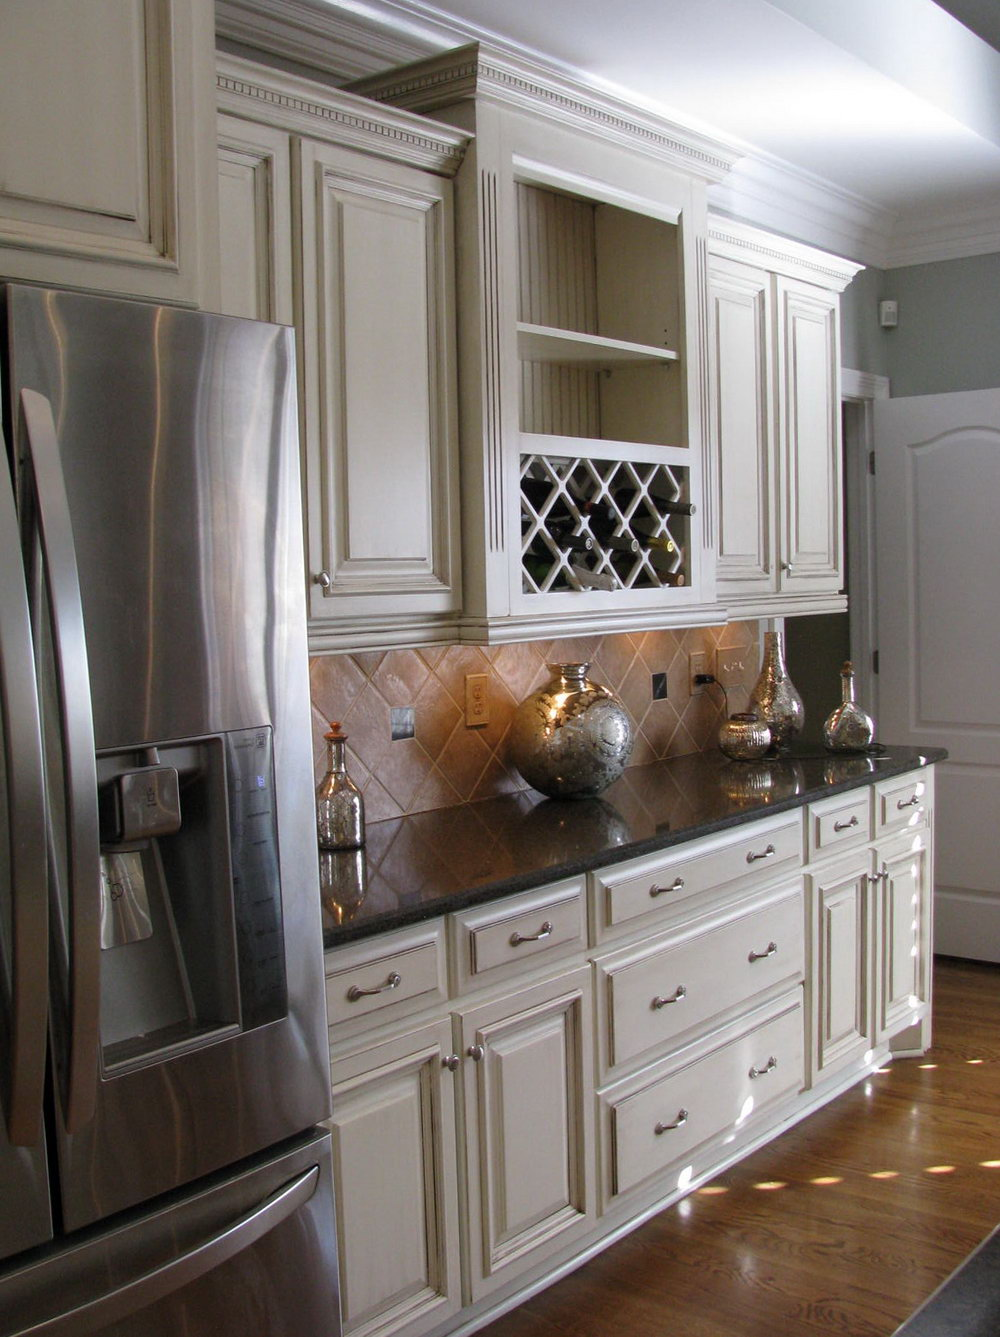 Cream Colored Kitchen Cabinets With Brown Glaze